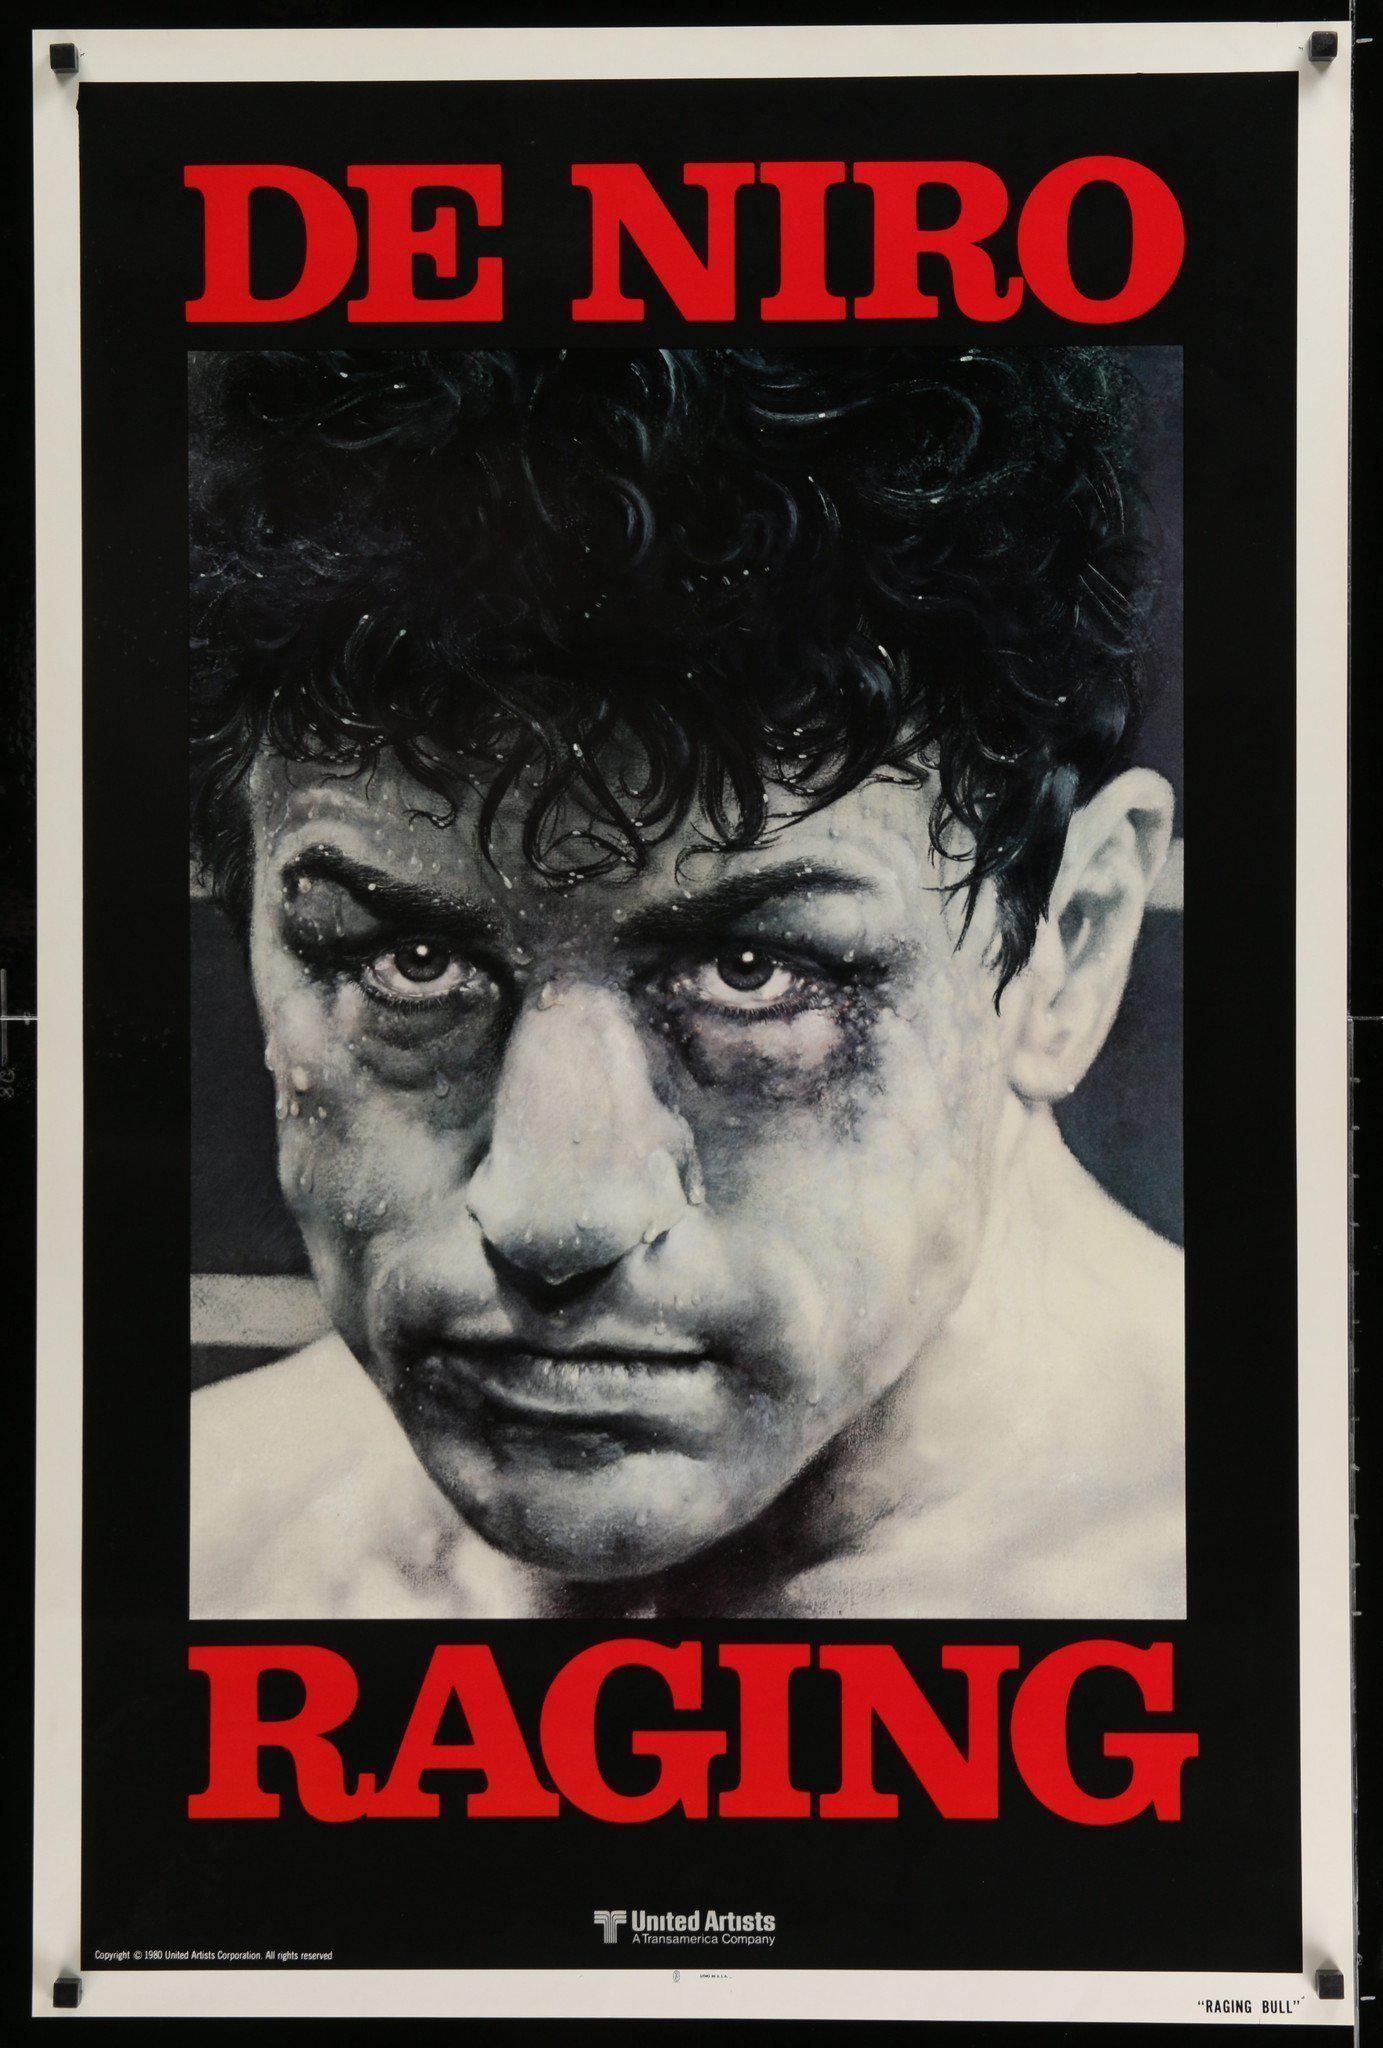 Raging Bull 1 Sheet (27x41) Original Vintage Movie Poster